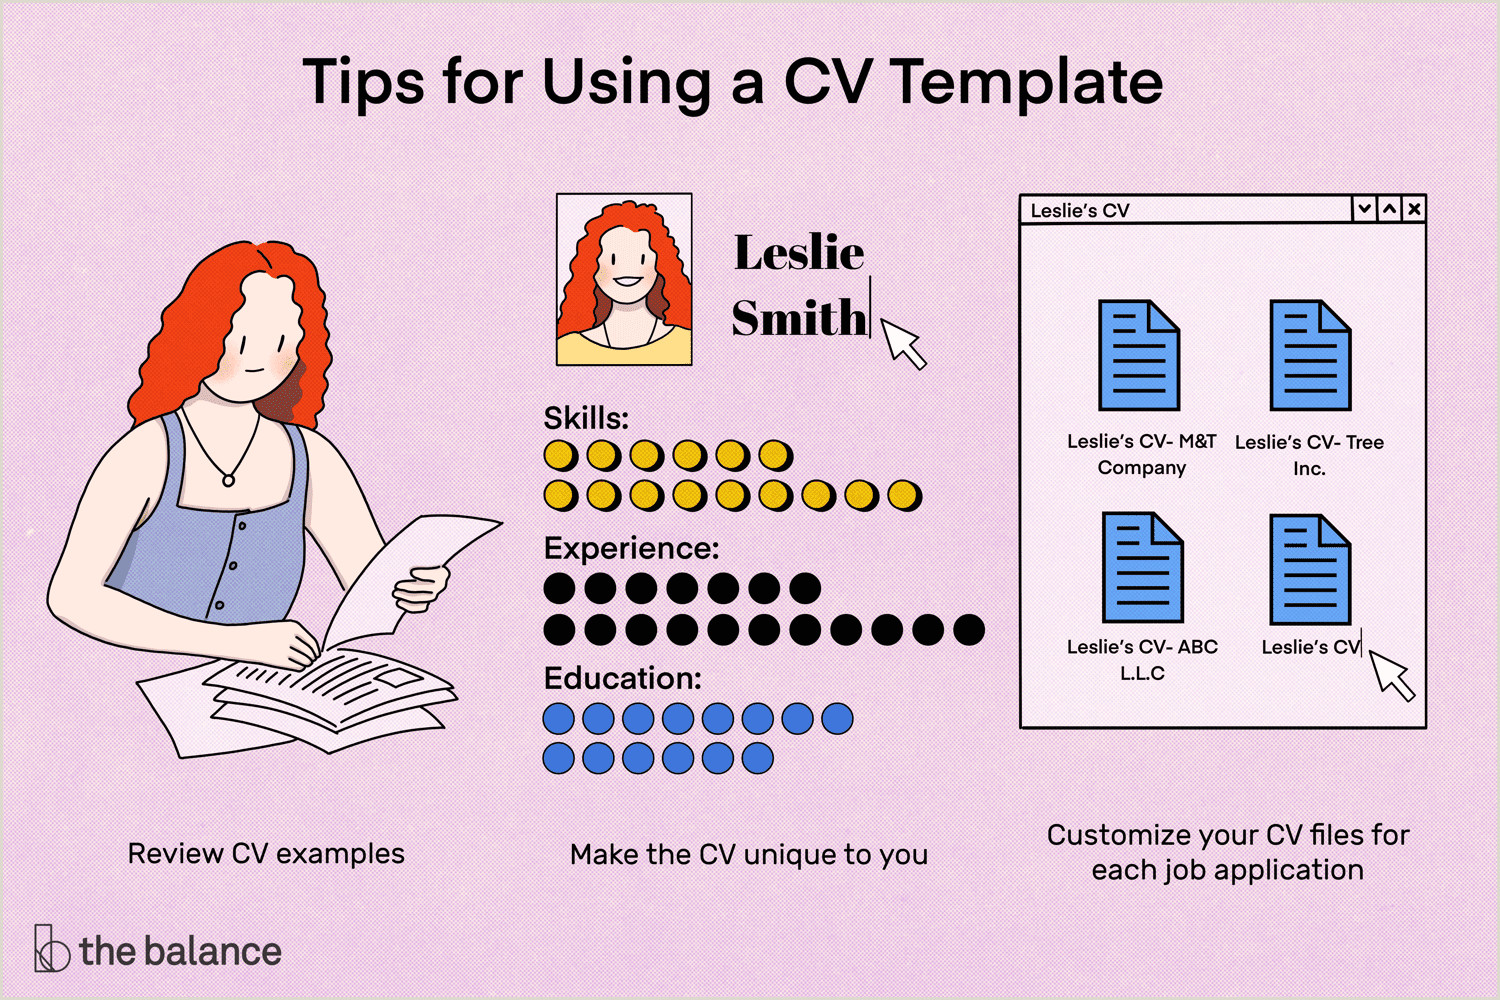 Curriculum Vitae format Download In Ms Word for Fresher Free Microsoft Curriculum Vitae Cv Templates